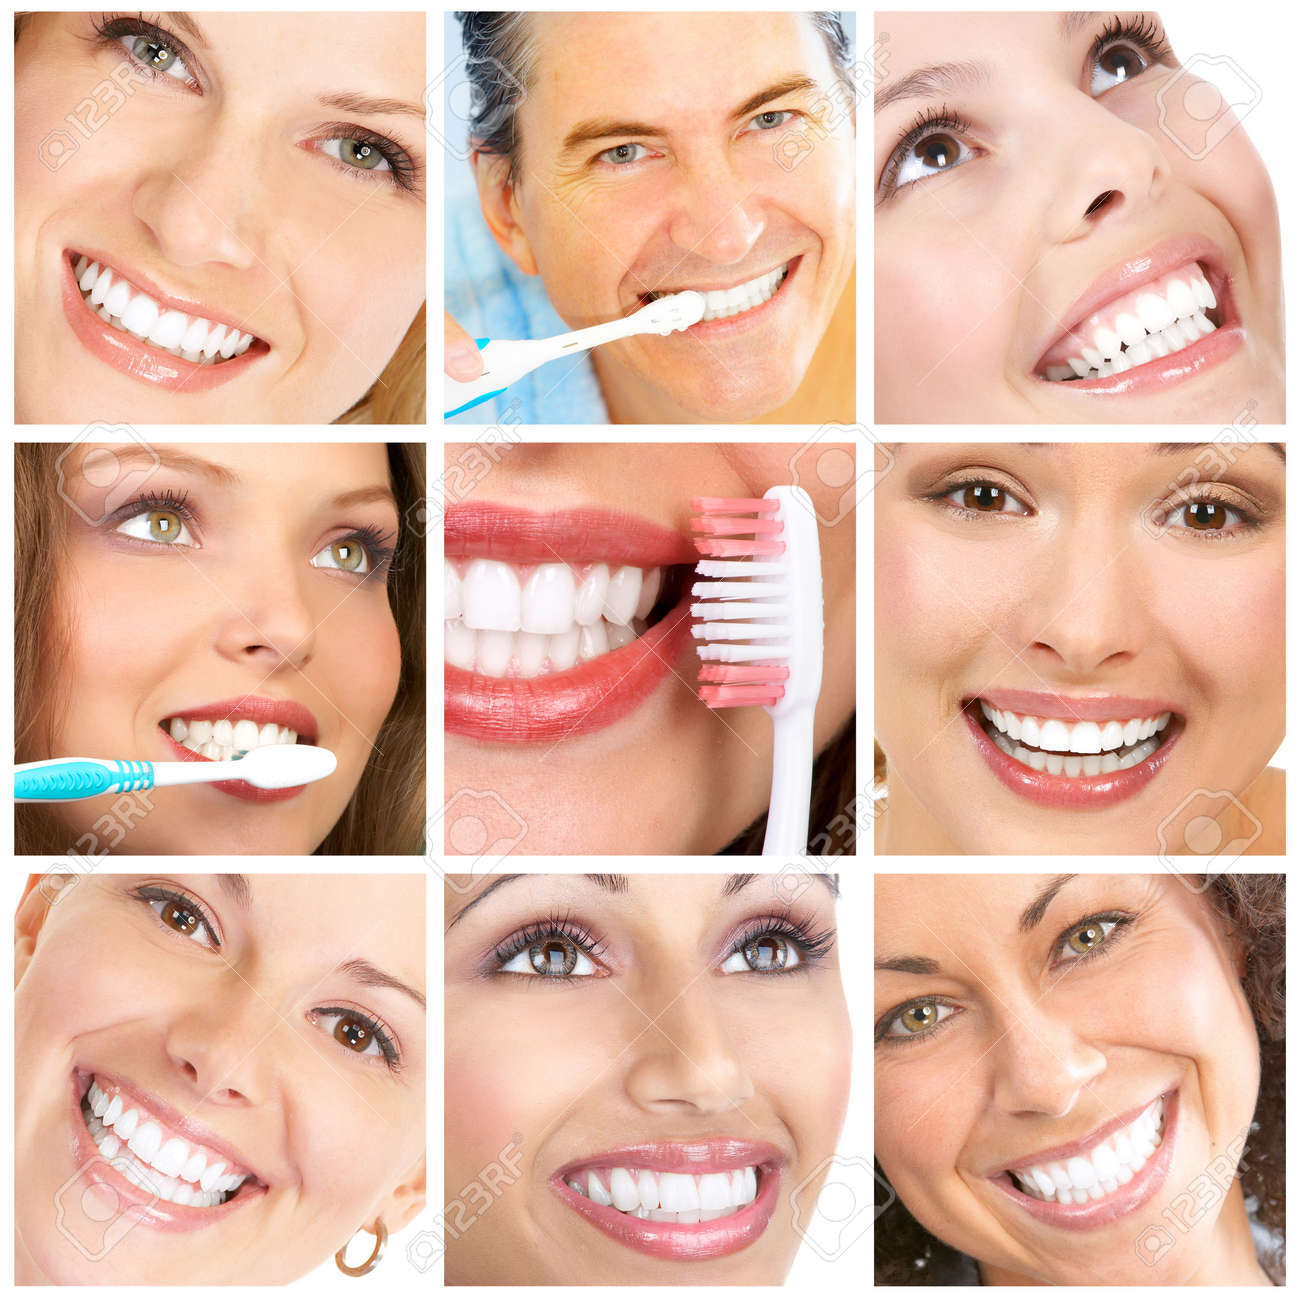 Smiles ans teeth. Faces of smiling people. Teeth care. Smile Stock Photo - 7135782